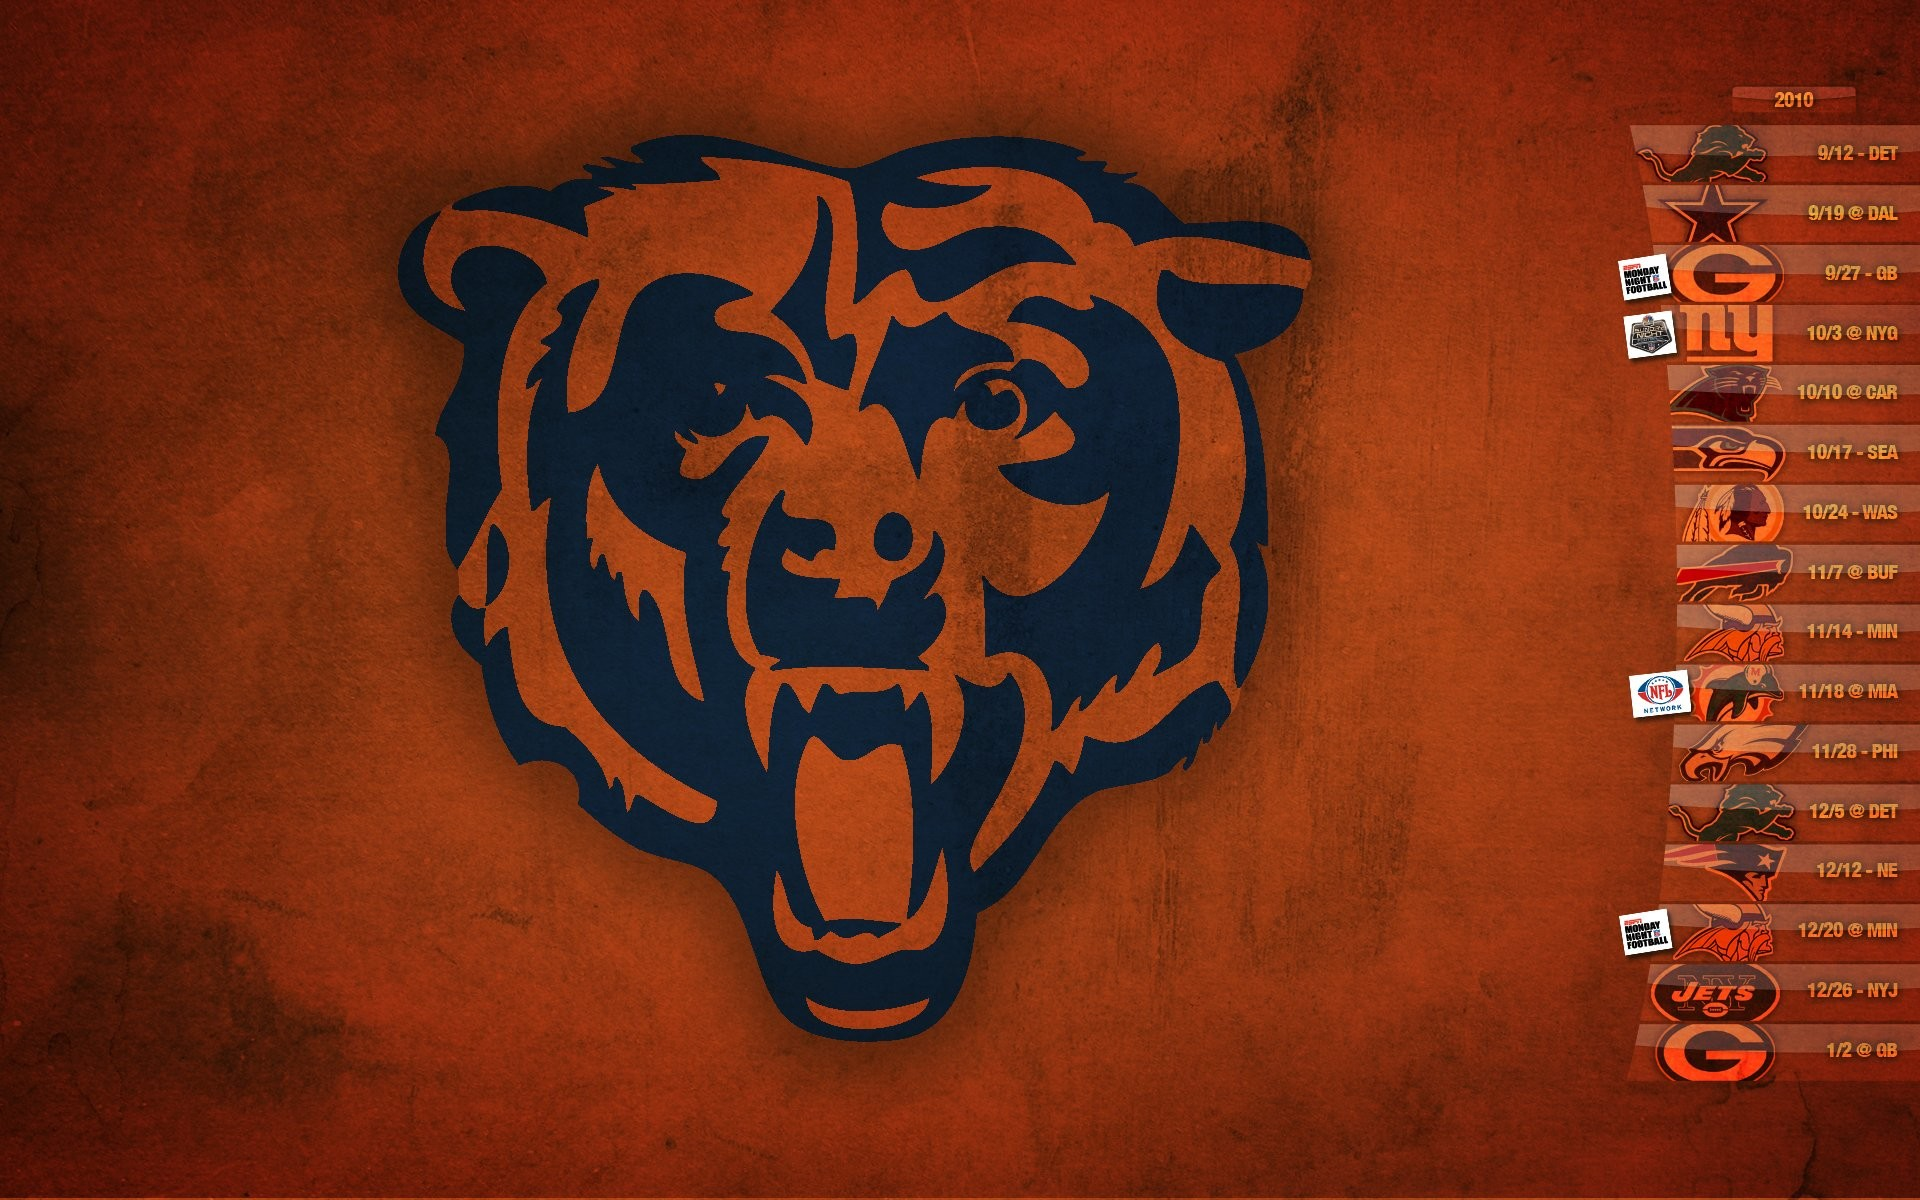 1920x1200 Marvelous Collections to Download Chicago Bears Football 2019 Wallpapers  For Desktop, Laptop and Mobile.